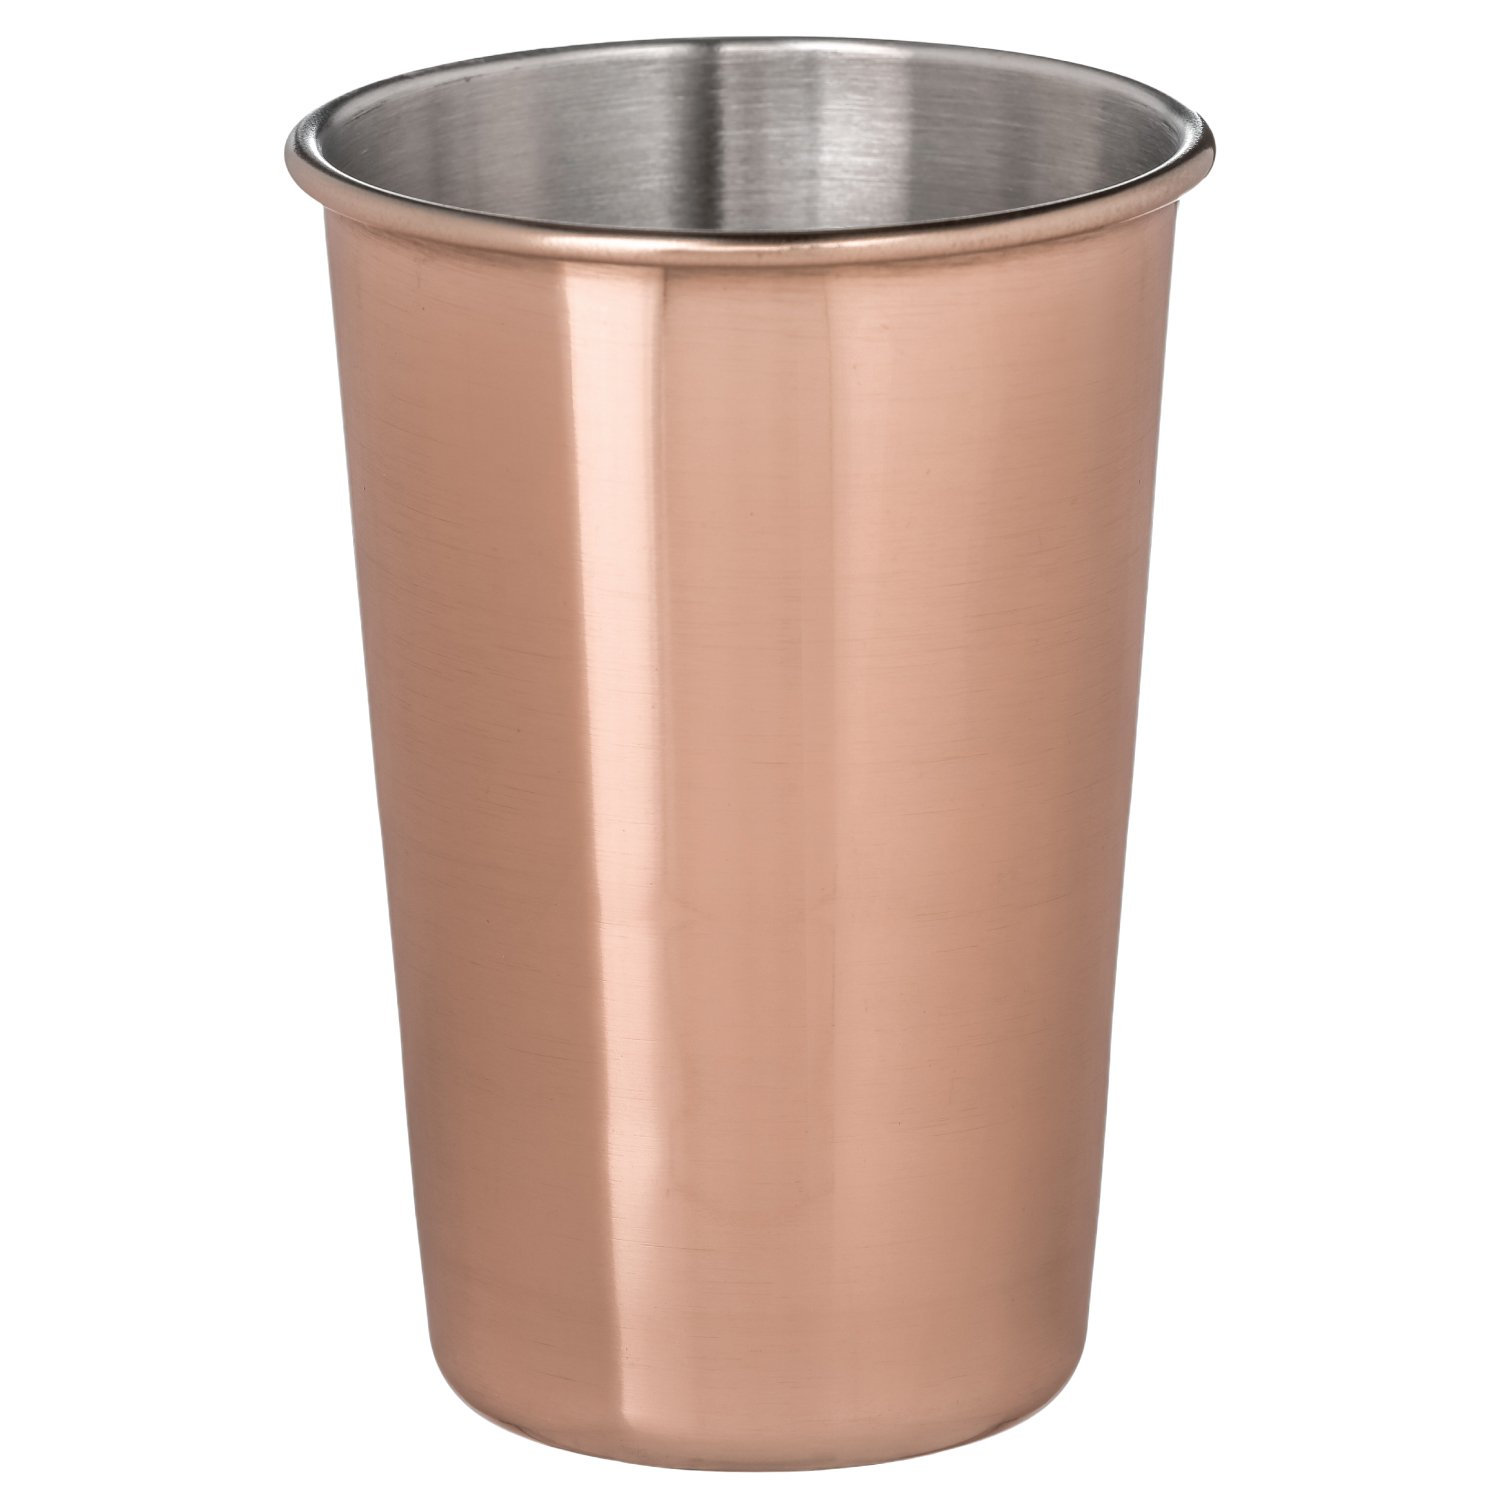 Thirsty Rhino Tenki, 16 oz Copper Plated Pint Cup Glass Tumbler Mug, Copper Plated (Set of 6)